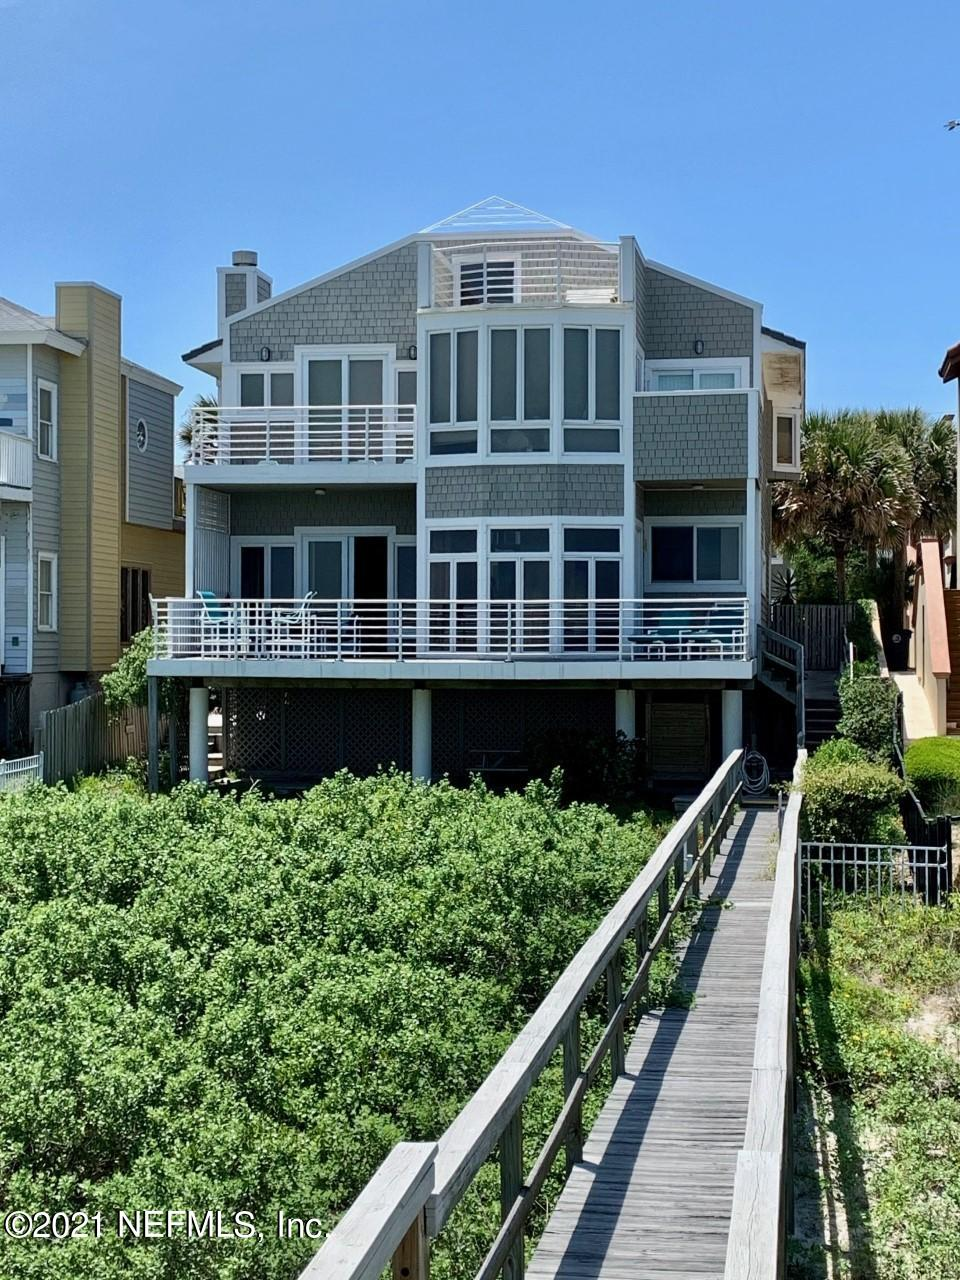 Welcome to this 2 story Cedar Shake oceanfront oasis with expansive water views in the coveted community of Atlantic Beach. Walk out the balcony doors to stunning sunrises, and dolphin pods swimming by. Natural light fills this 3 bed, 2.5 bath home. Sweeping ocean views continue into the kitchen. Ten-foot high ceilings in family room, generous breakfast area, cocktail wet bar, and courtyard pool/spa offer the ultimate exclusive beach lifestyle. Home has 2 fireplaces, 3 balconies, oversized owners suite with vaulted ceilings, sitting area/flex space, access to crow's nest, steam shower, 3 walk-in closets, and 2nd floor laundry. Ground level covered backyard picnic/game area and private outdoor shower and private boardwalk to the beach. Included on property is a 1 br/1 bath carriage house with full kitchen, can be income property as it has separate utilities. 3 car garage-1 bay is set up as a cabana with sliding doors to pool. Half bath and wet bar for entertaining in pool area. Both main home and carriage house have cement tile roof replaced in 2020.    Head down to the beach for a stroll to the town center shops and restaurants, and chat with neighbors along the way. This home is built on solid pilings. A must see!!